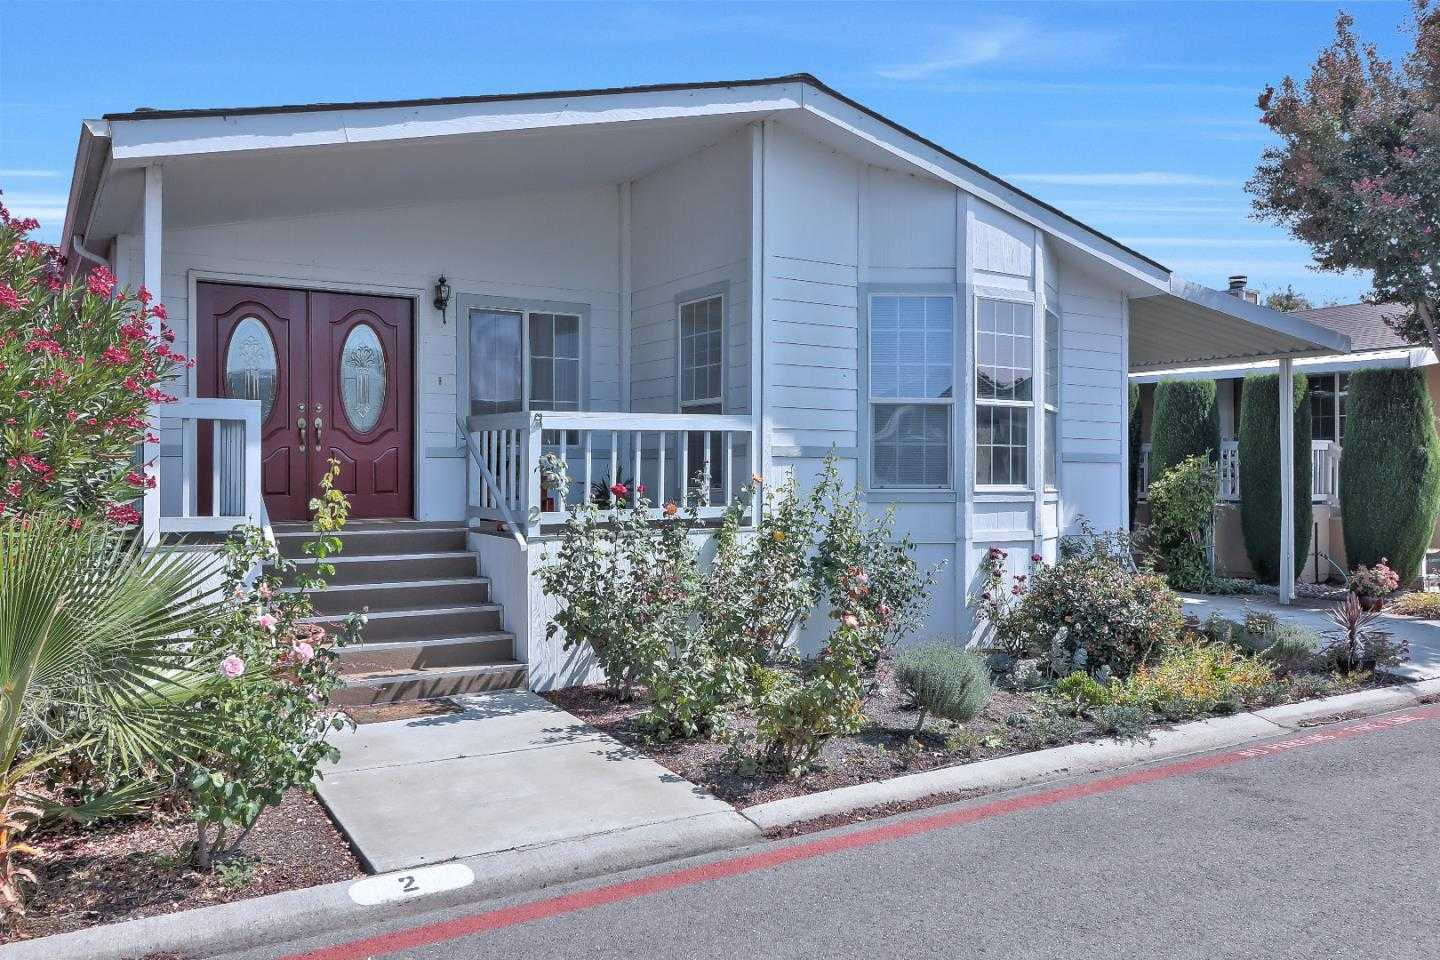 $285,000 - 3Br/2Ba -  for Sale in Sunnyvale